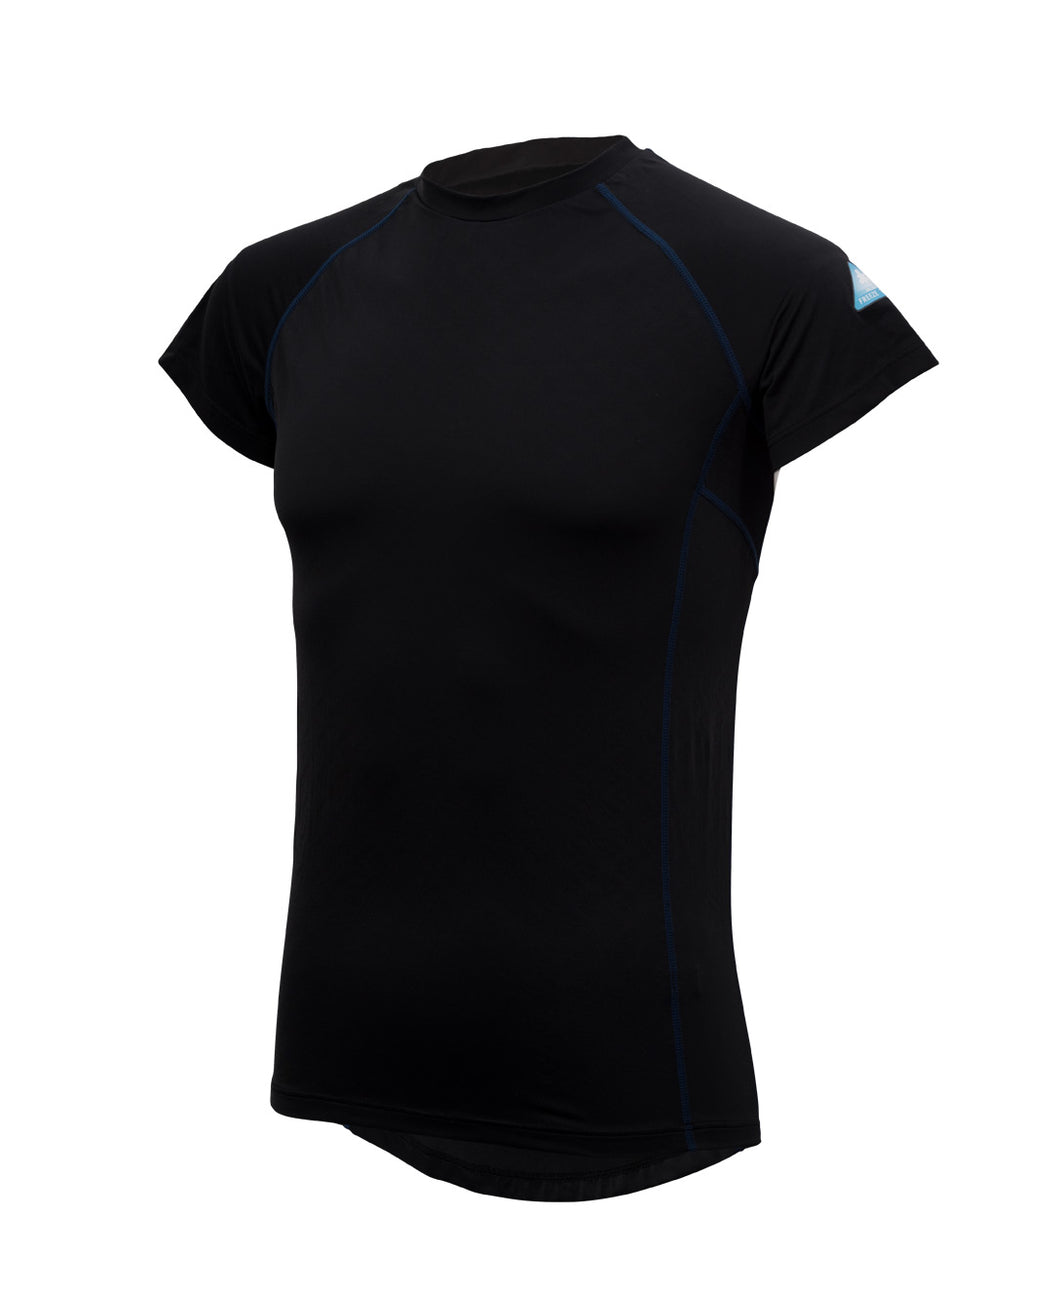 Freeze Tech Shirt, Short Sleeve, Black- Sustained Cold Effect / Quick Dry / Antibacterial & Anti Odour / Anti UV